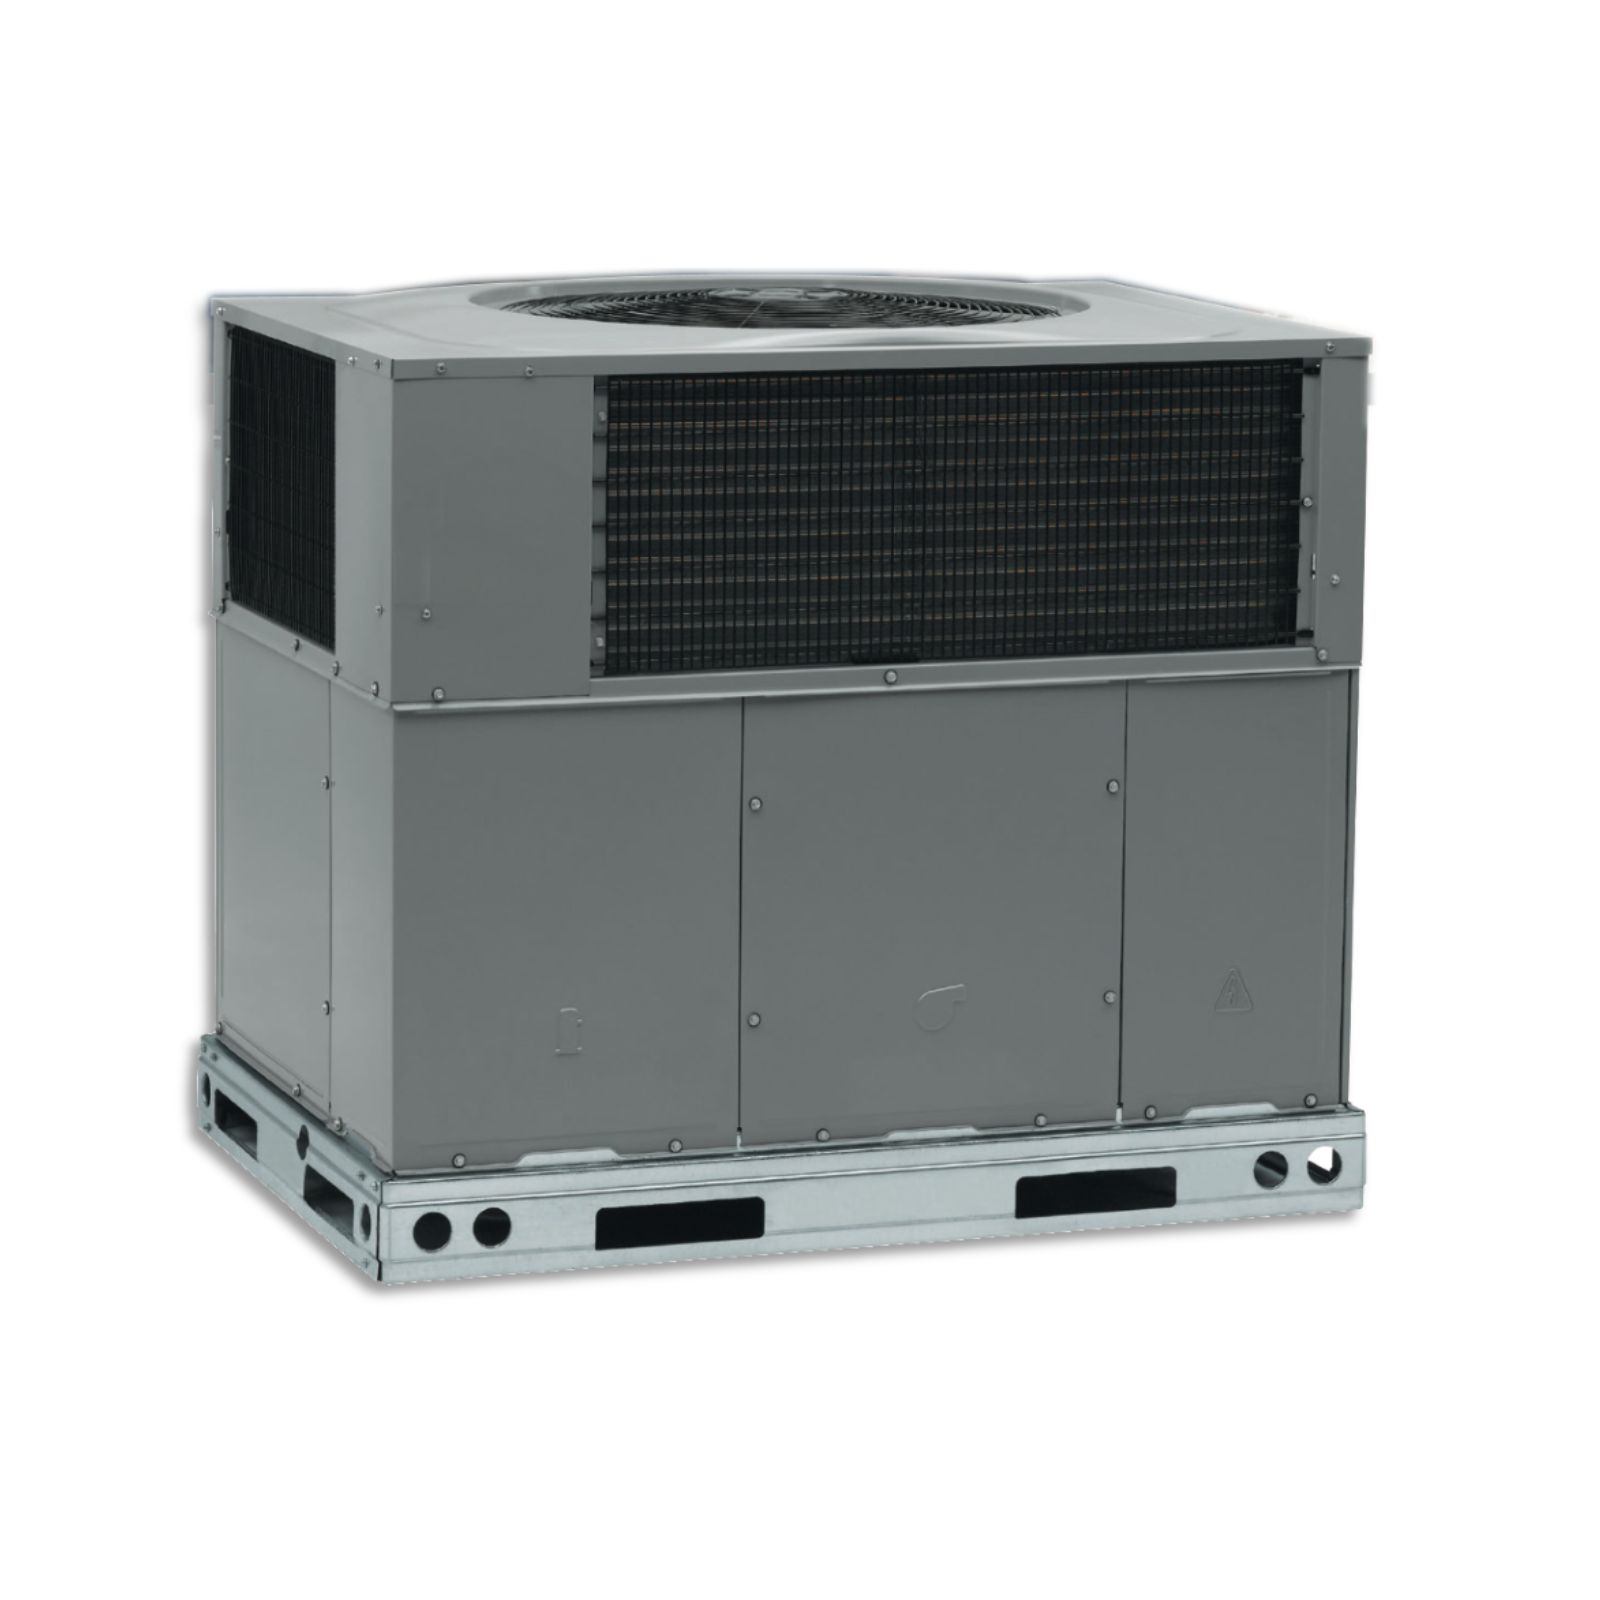 Tempstar PHD430000K000F - 2 1/2 Ton Package Heat Pump, 14 SEER, 208-230/1/60, R410A